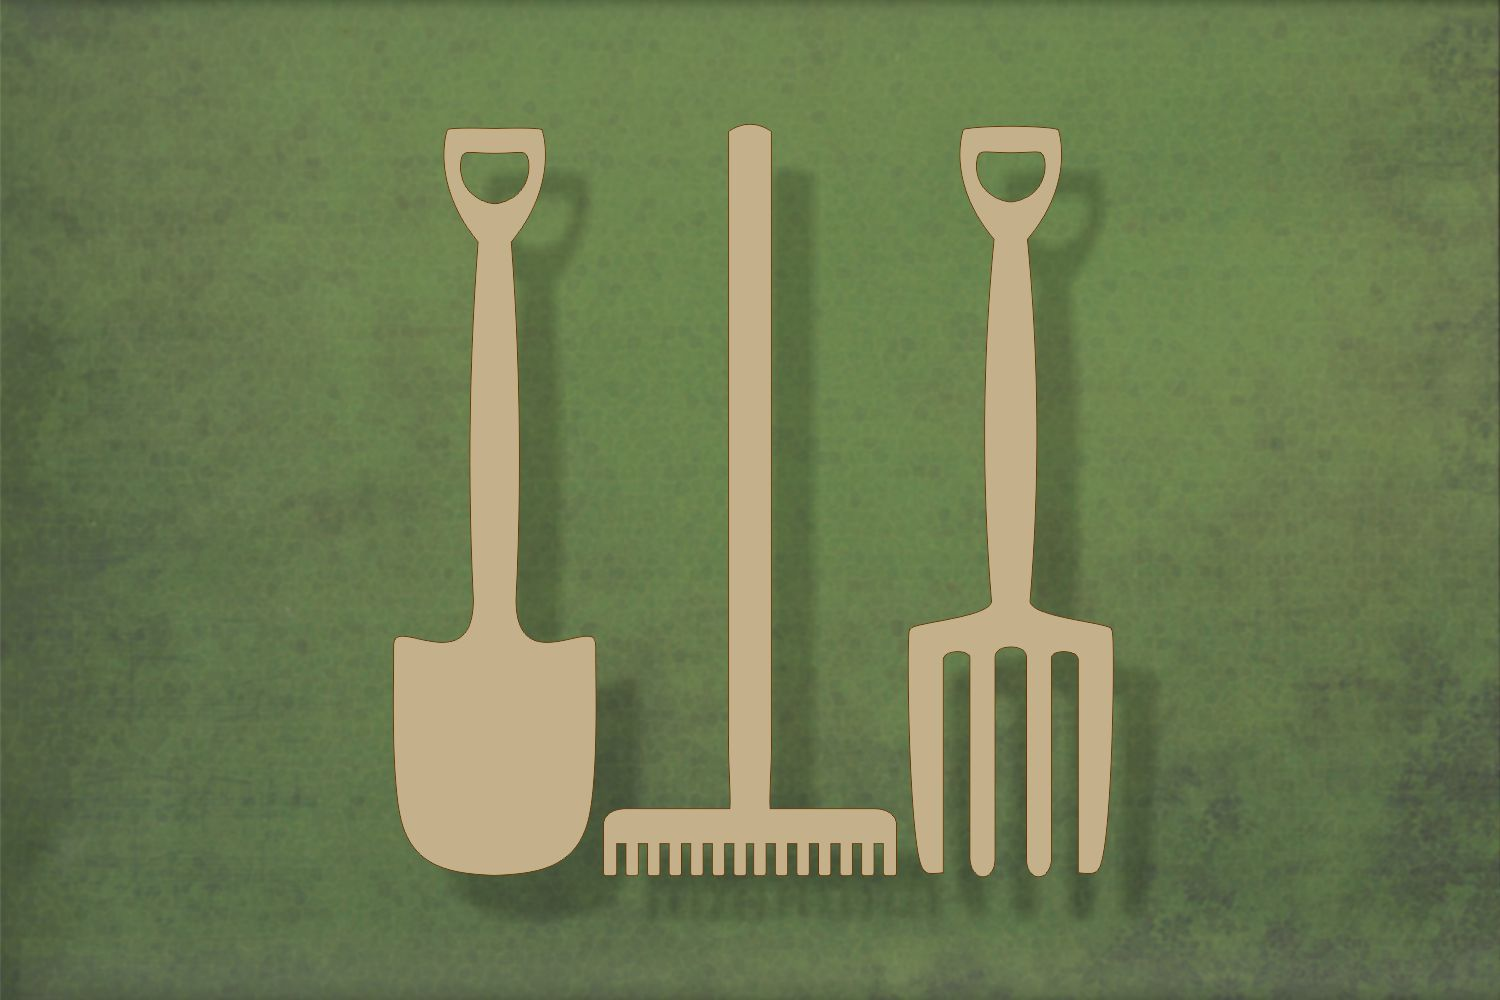 Laser cut, blank wooden Garden tools - spade fork and rake shape for craft